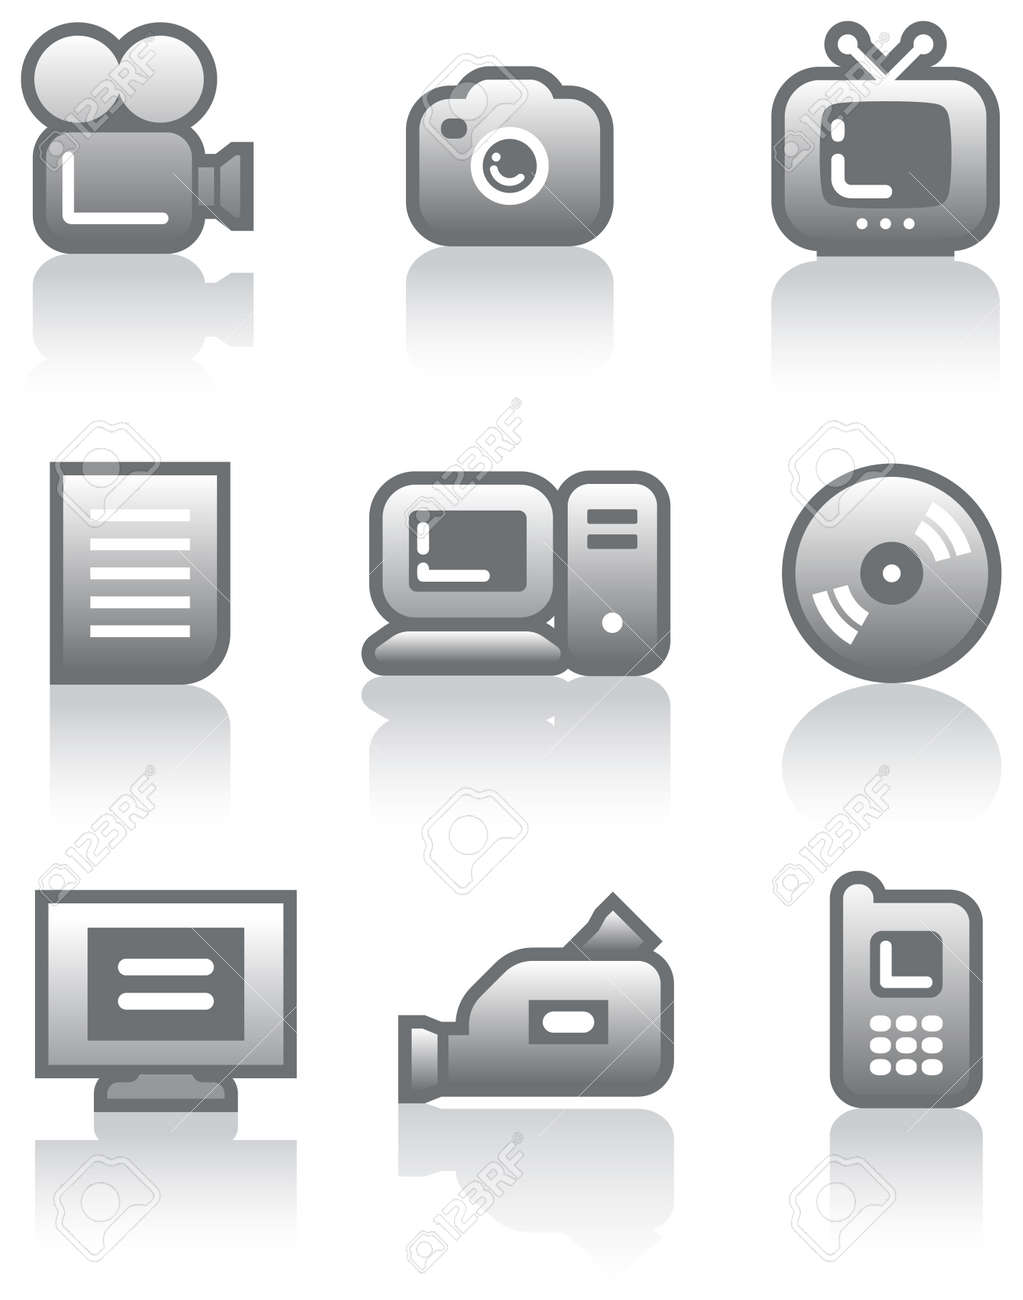 Media - Vector Icons Set Stock Vector - 5015800